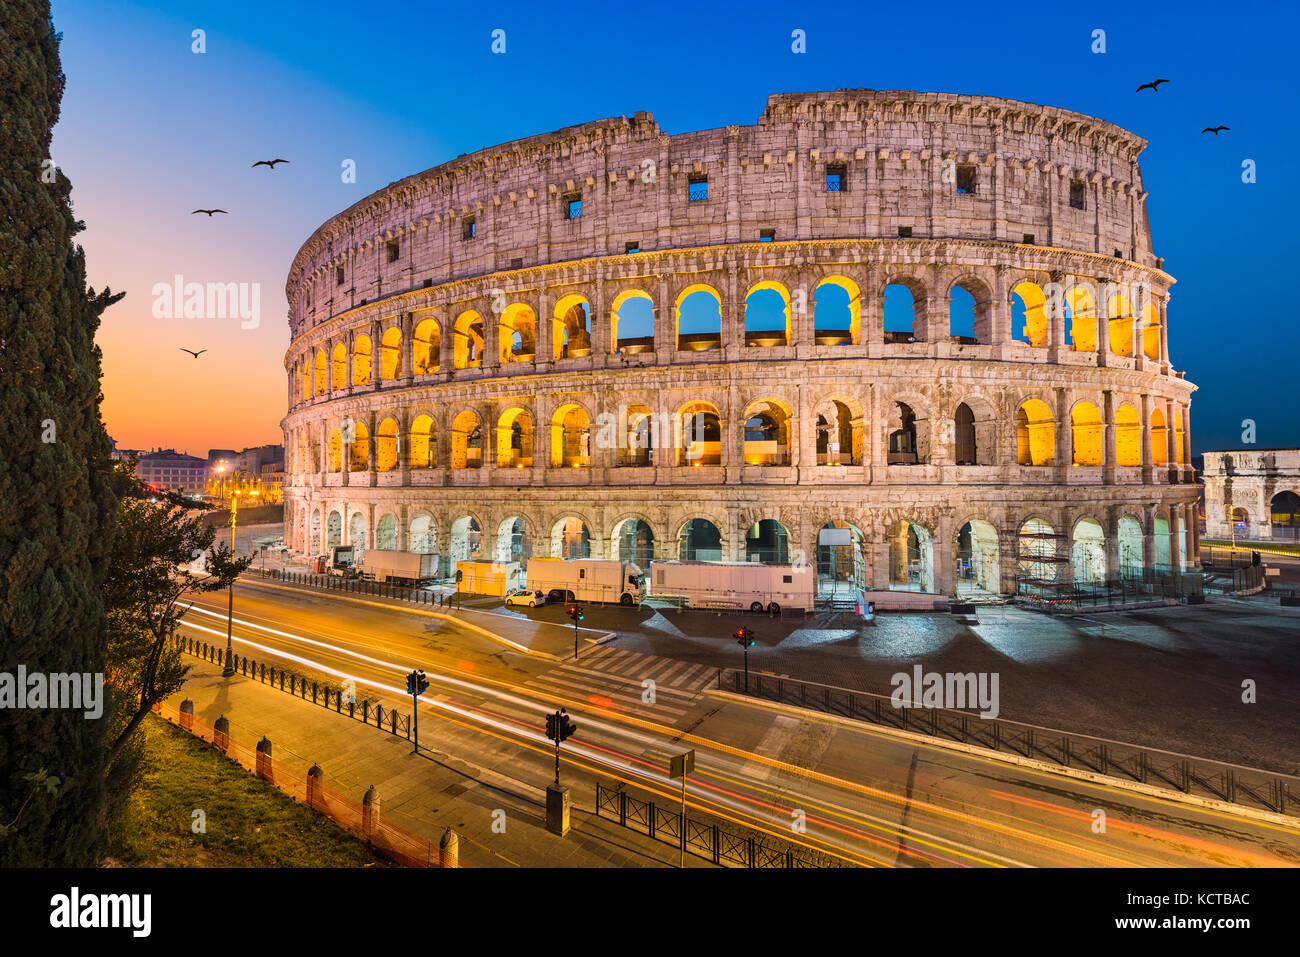 Colosseum in Rome, Italy at night - Stock Image